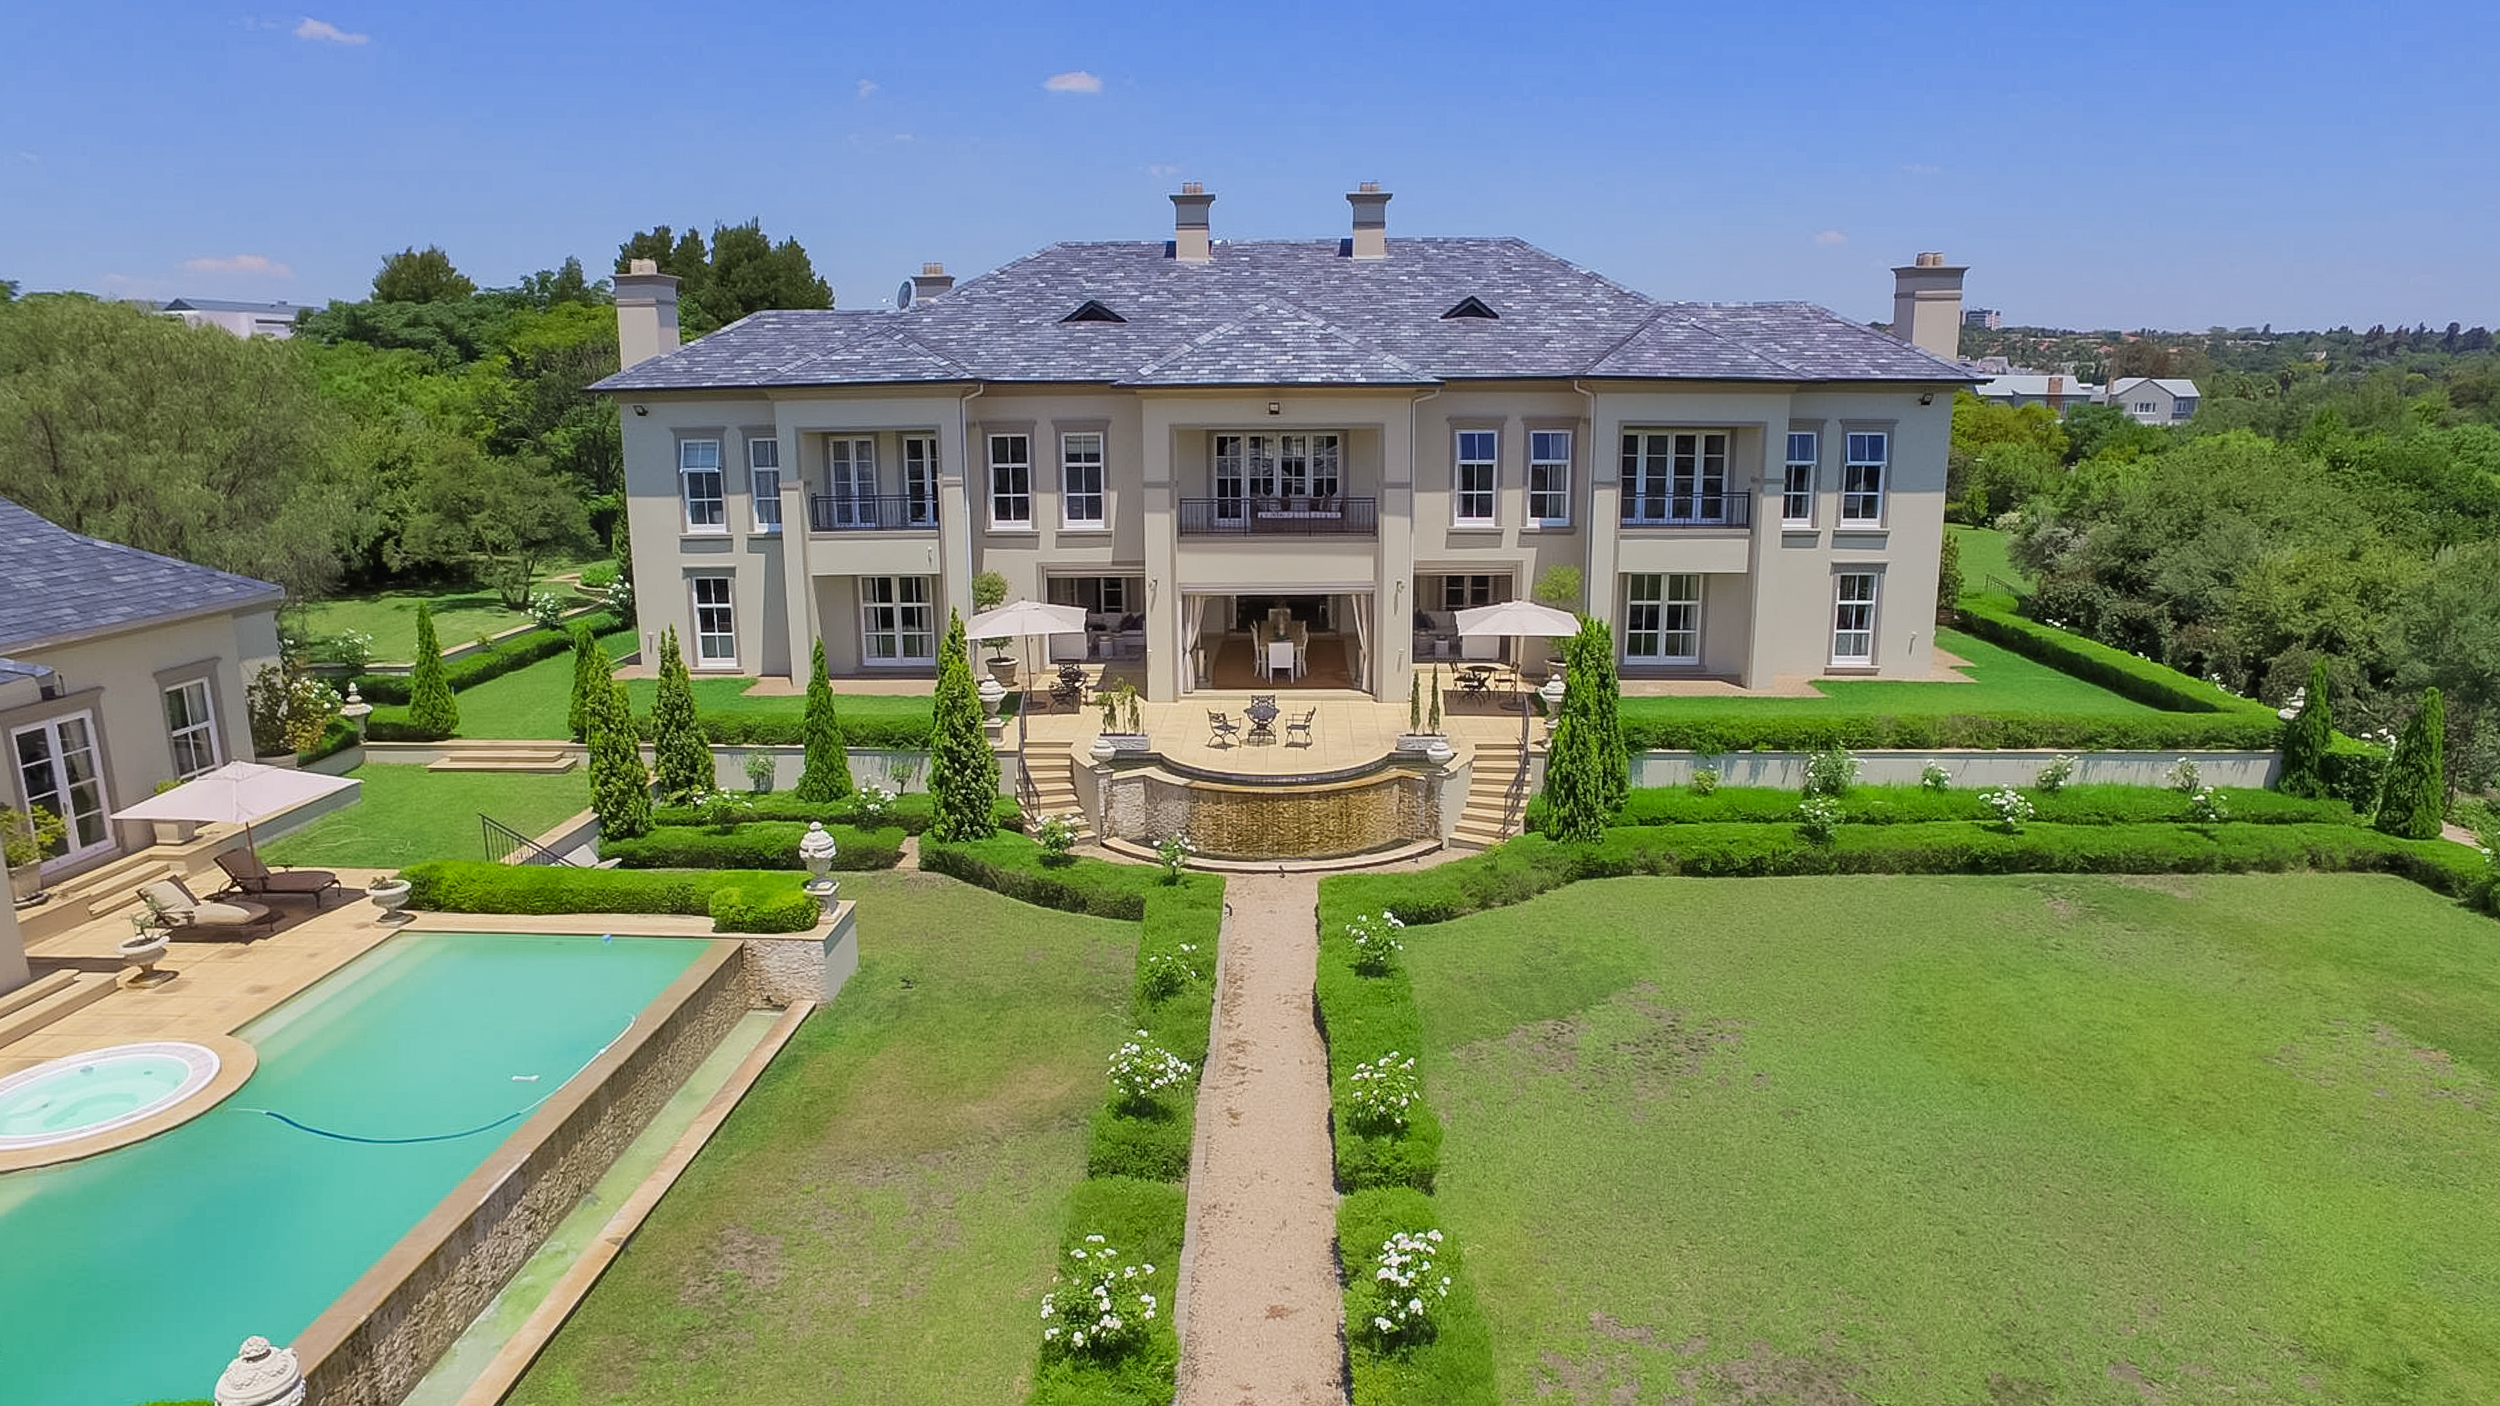 Main Photo of a 6 bedroom Property for sale